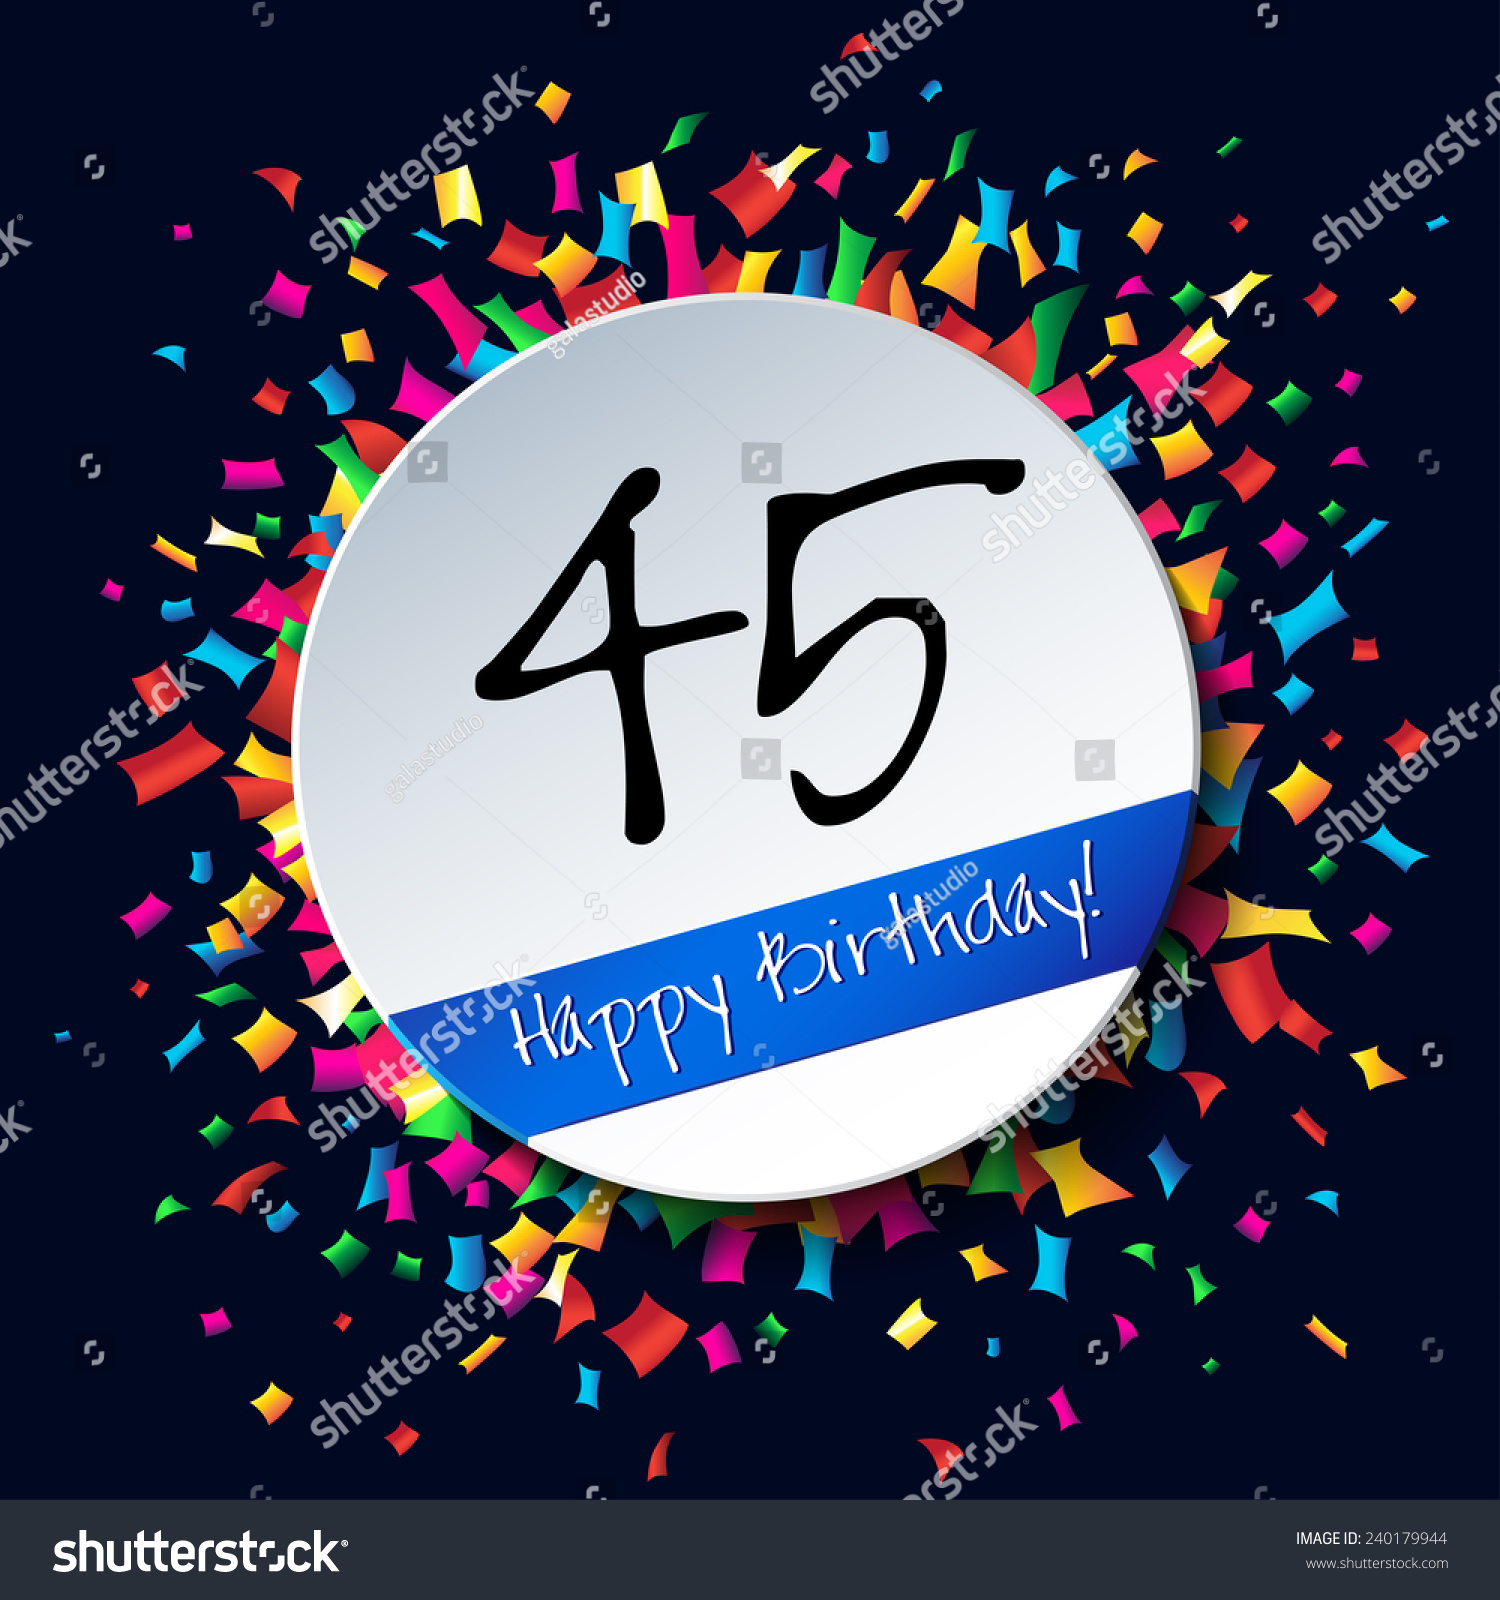 45 happy birthday background card colorful stock illustration 45 happy birthday background or card with colorful confetti buycottarizona Gallery